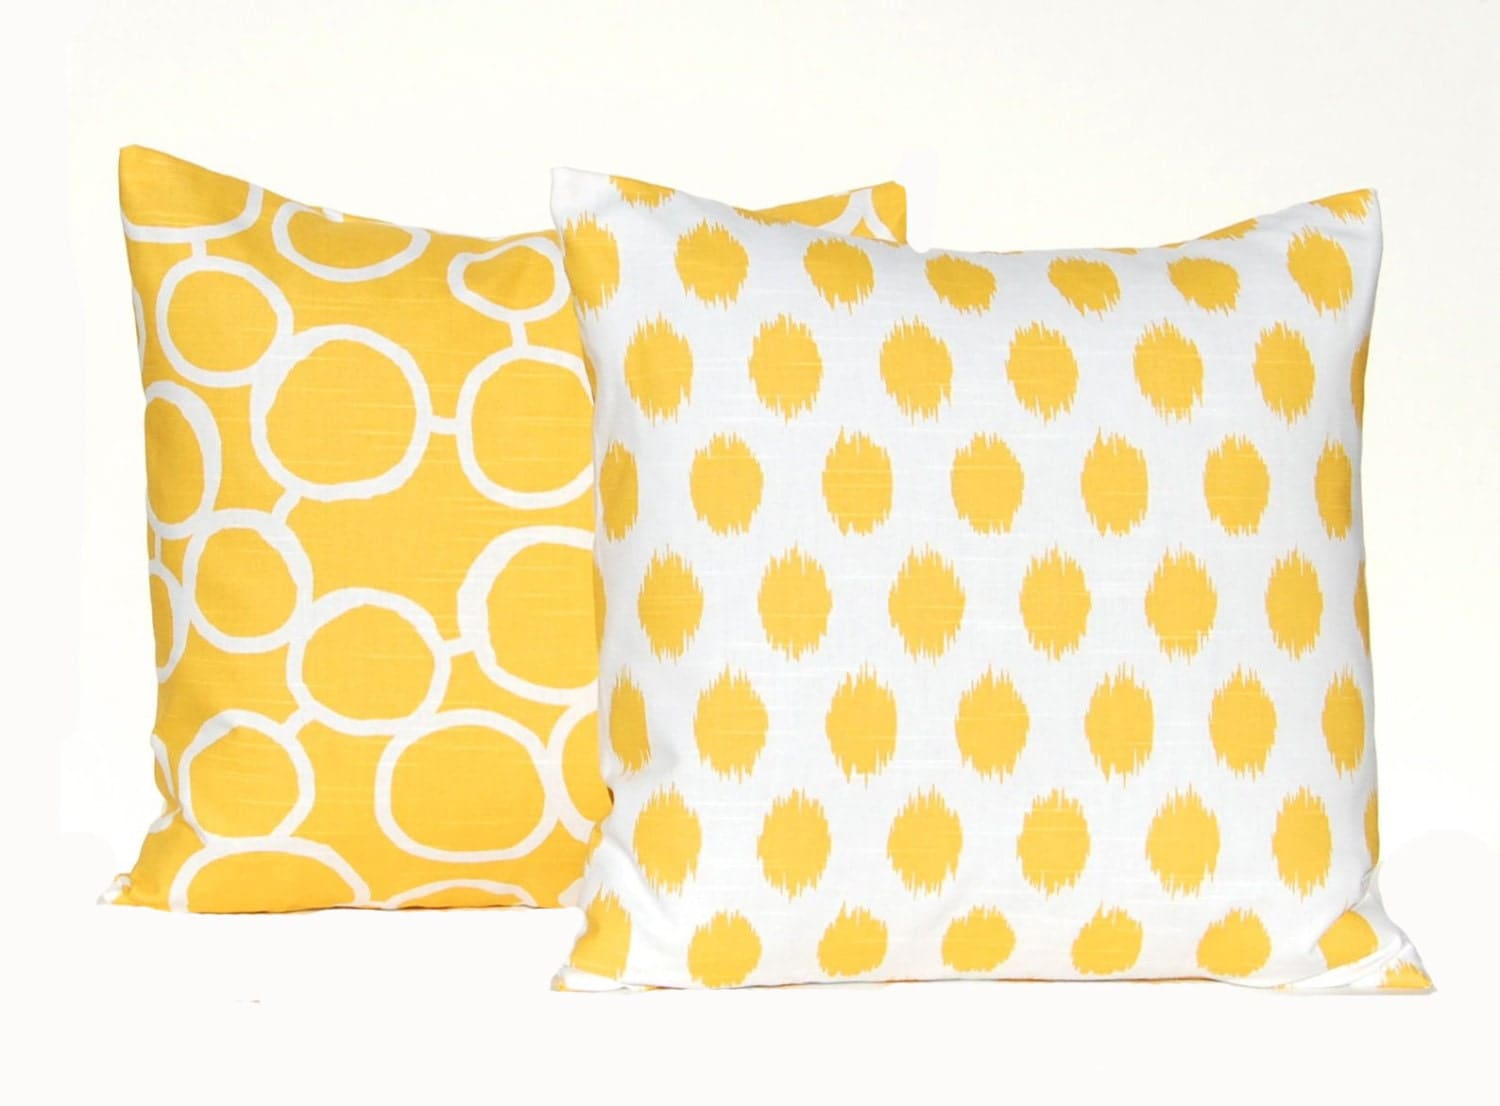 Throw Pillow Yellow : SALE Yellow Pillows Decorative Throw Pillow by FestiveHomeDecor